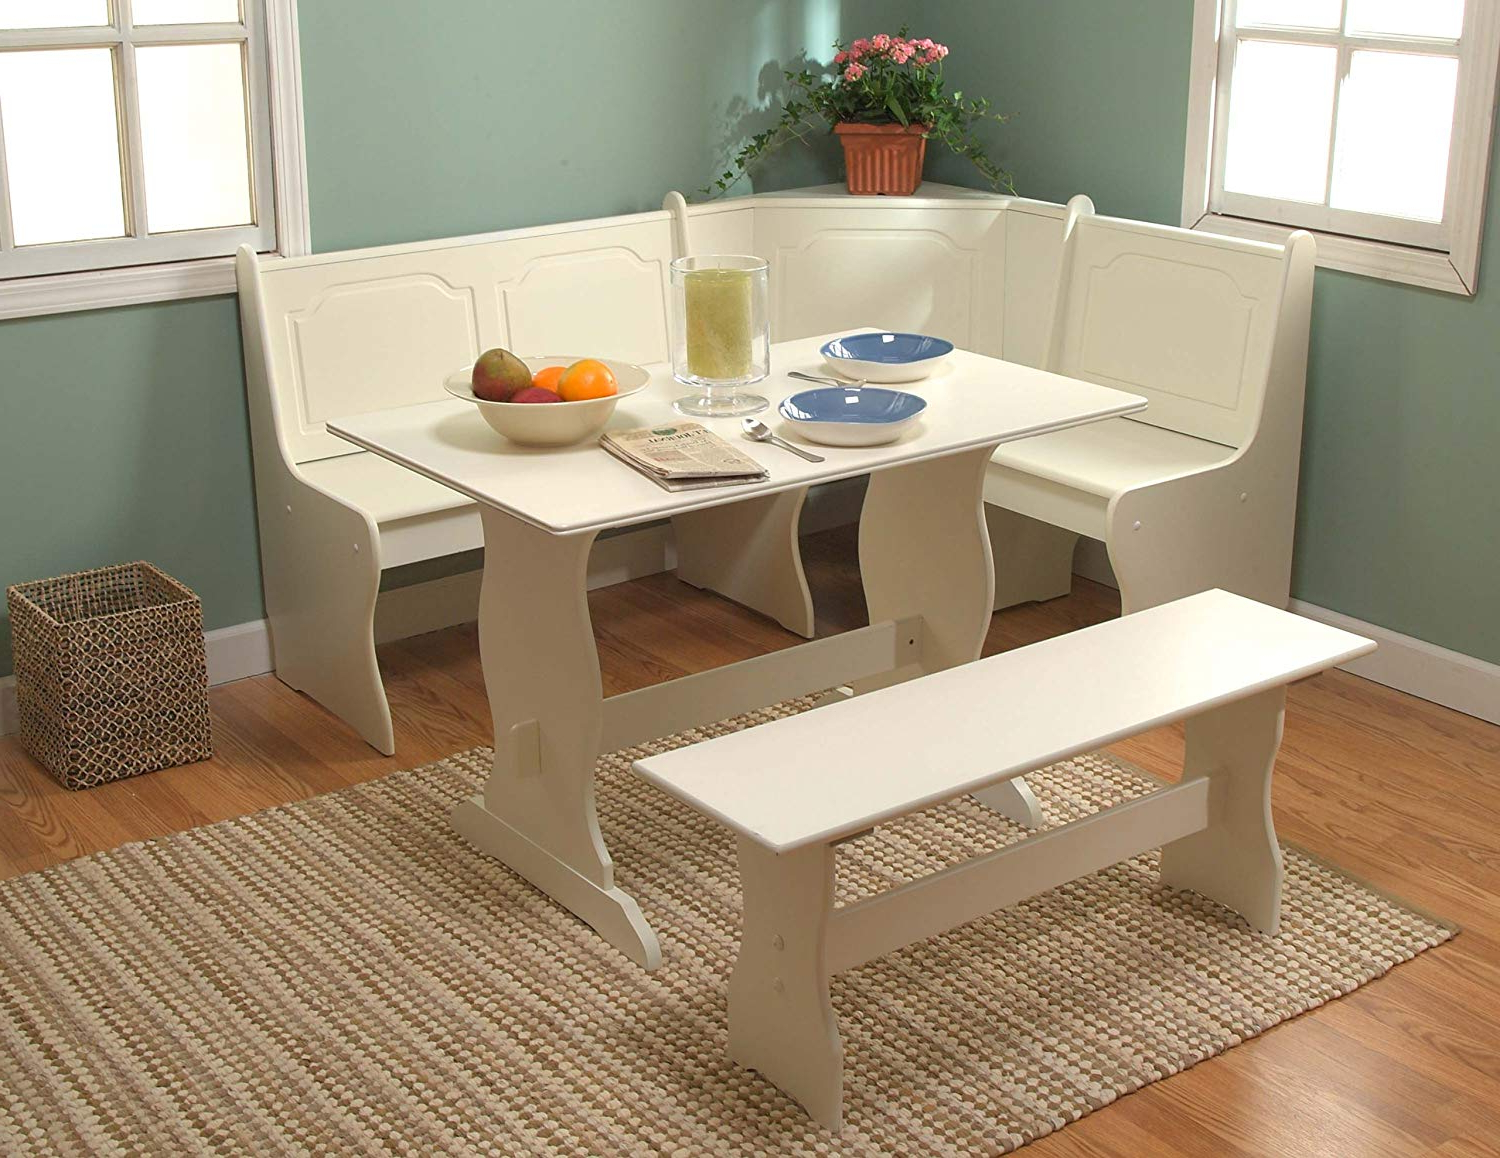 3 Piece Breakfast Nook Dinning Set With Newest Target Marketing Systems 3 Piece Breakfast Nook Dining Set With A L Shaped Storage Bench And A Trestle Style Dining Table And Bench, Antique White (View 3 of 20)